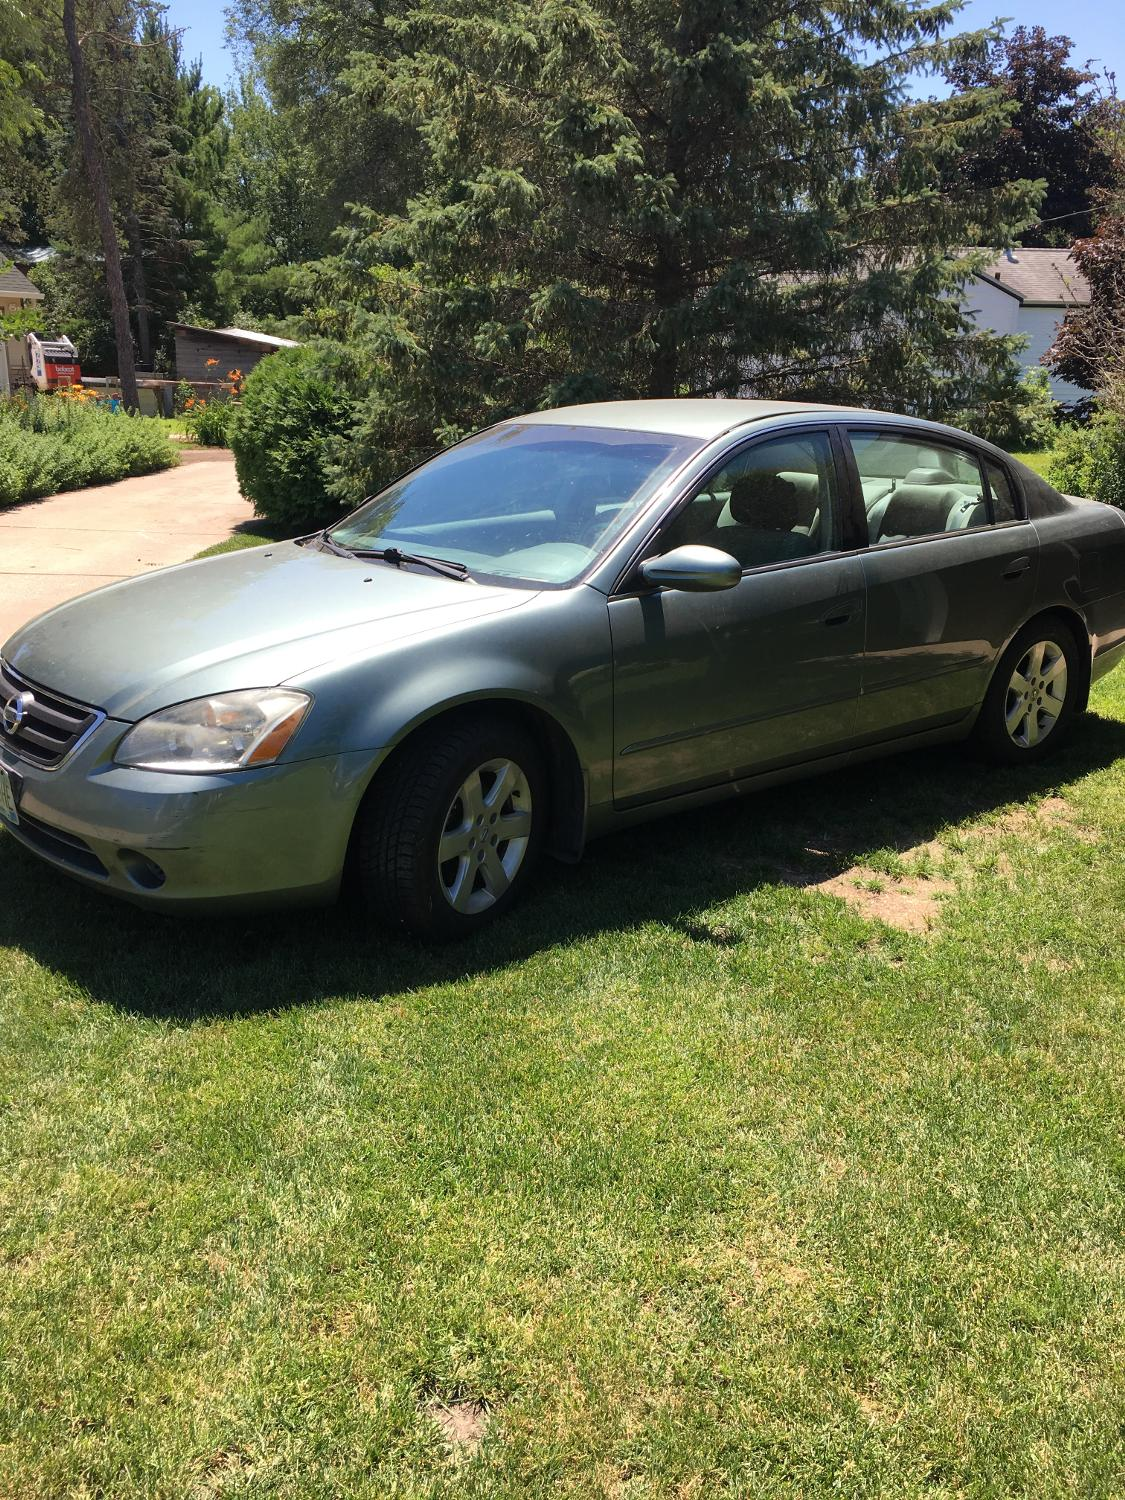 Best 2002 Nissan Altima for sale in Winona, Minnesota for 2020